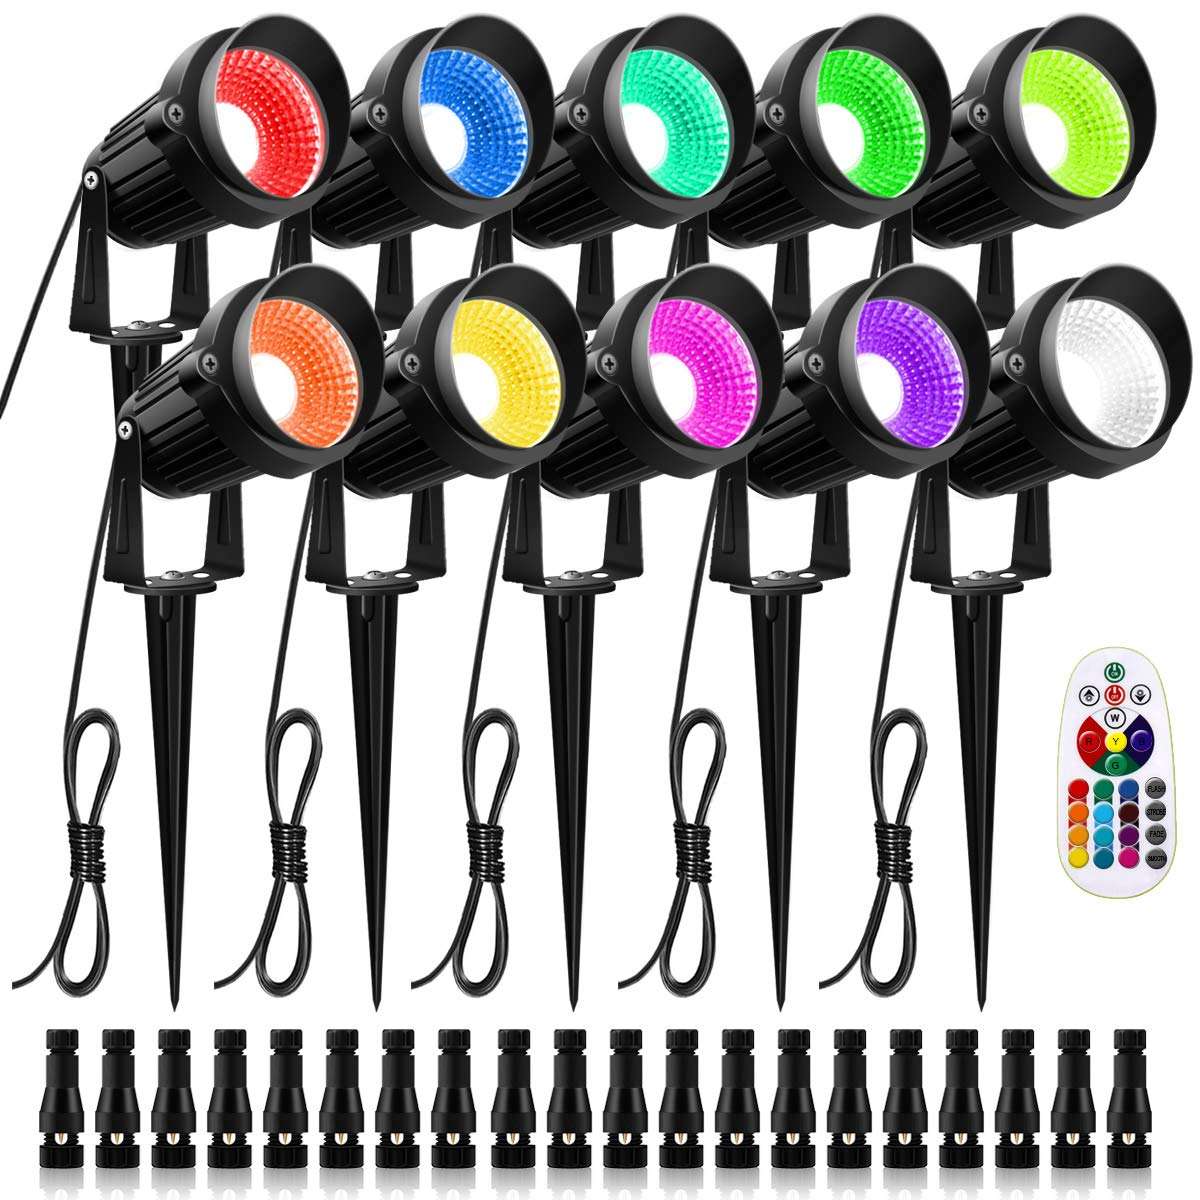 ZUCKEO RGB Color Changing Landscape Lighting